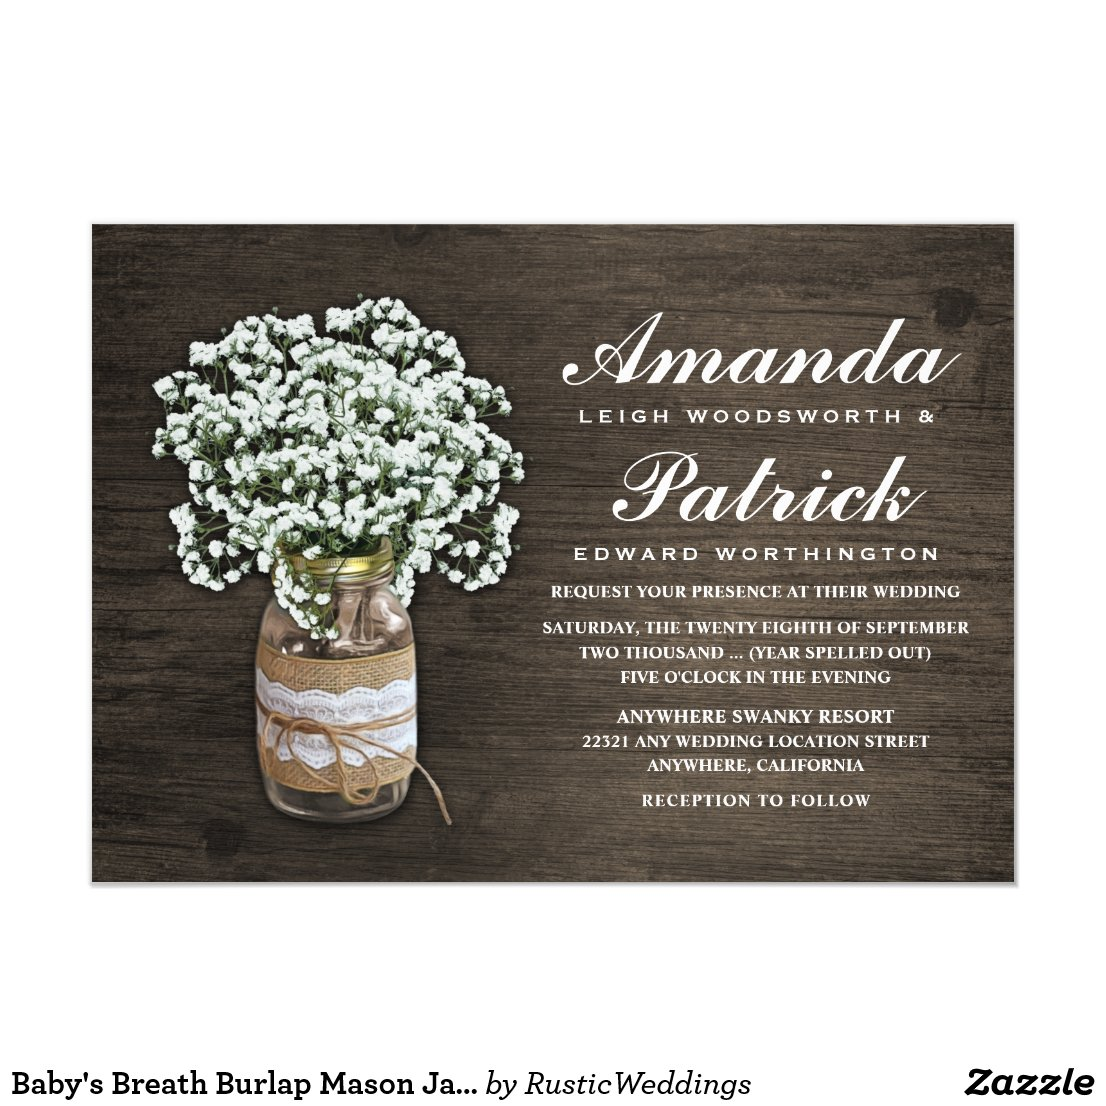 Baby's Breath Burlap Mason Jar Wedding Invitations